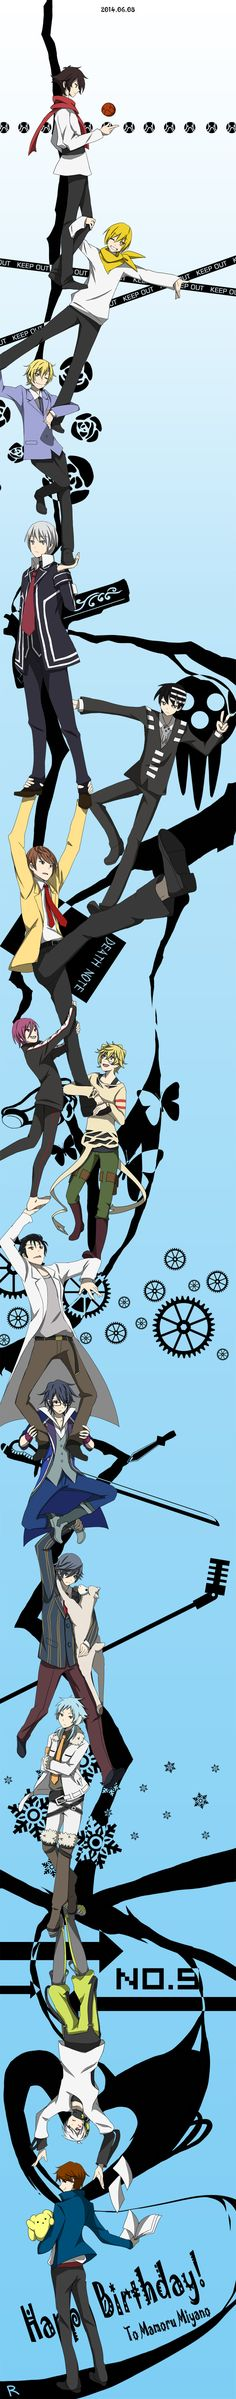 Durarara!! Ending - Trust me - Miyano Mamoru edition by ルナ on pixiv // THAT. THAT IS ALLOT OF A CROSSOVER. OKAY.